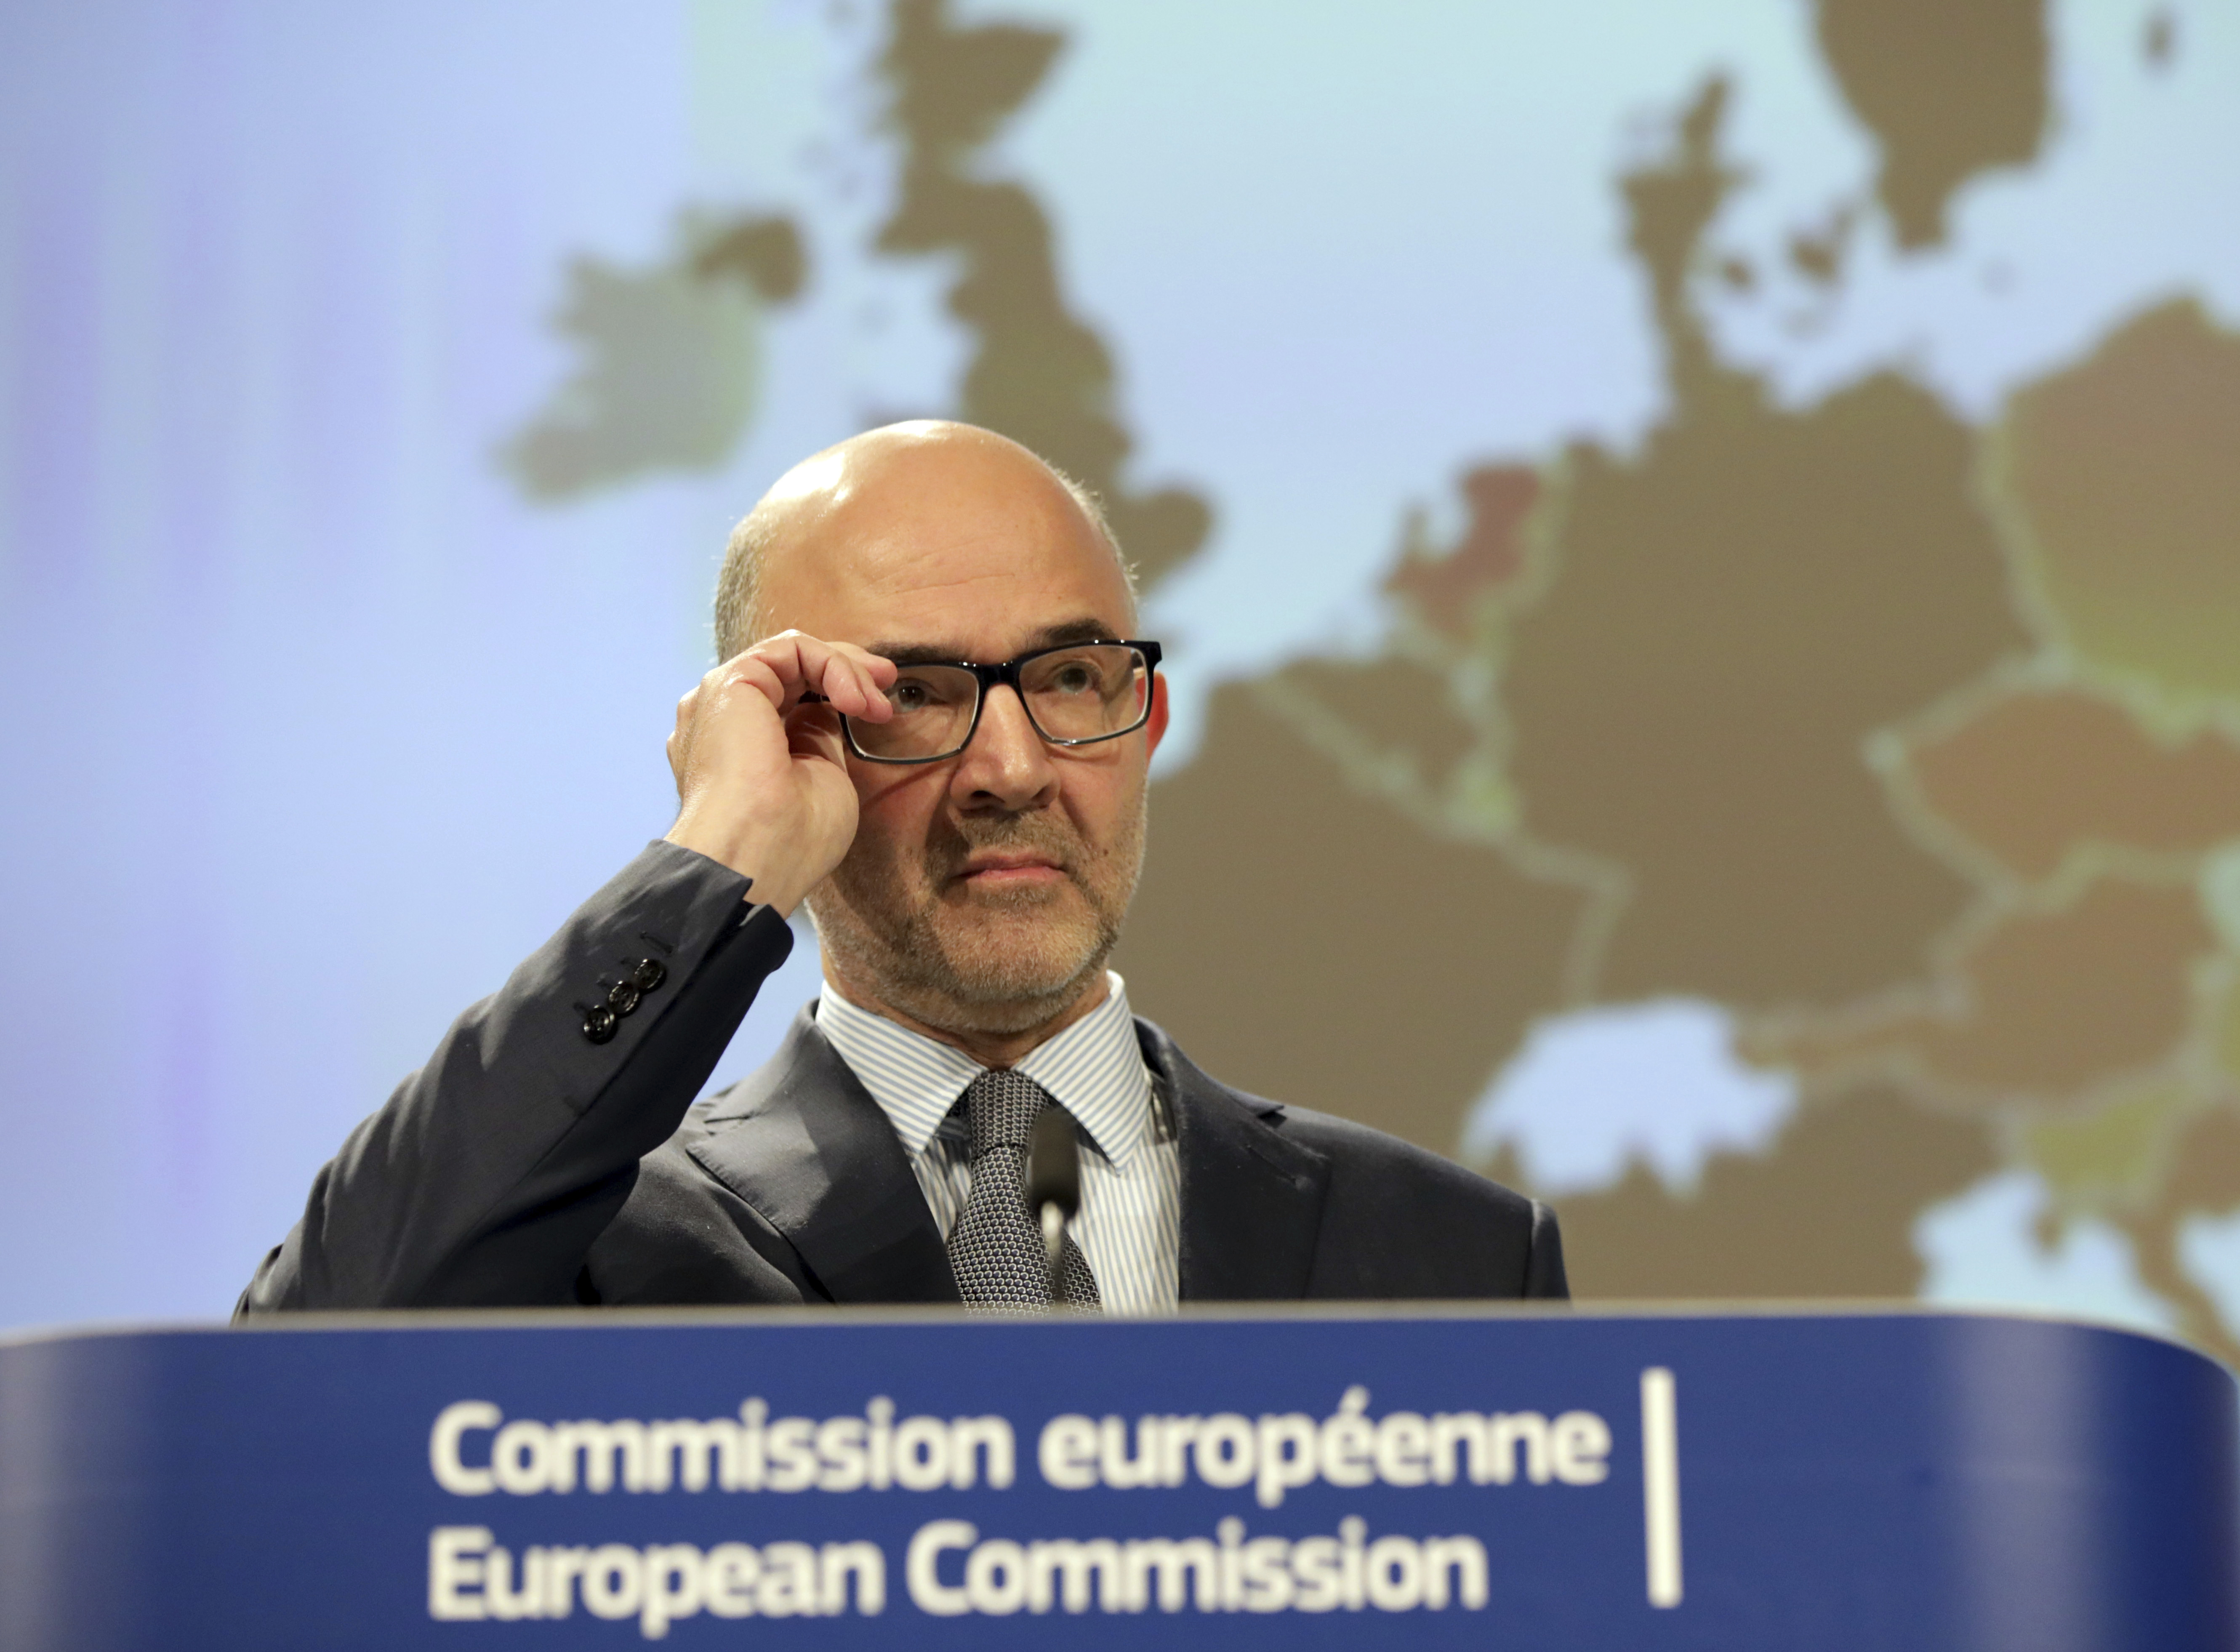 European Commissioner for Economic and Financial Affairs Pierre Moscovici pauses before speaking as he presents the Autumn 2018 economic forecast at EU headquarters in Brussels, Thursday, Nov. 8, 2018. (AP Photo/Olivier Matthys)